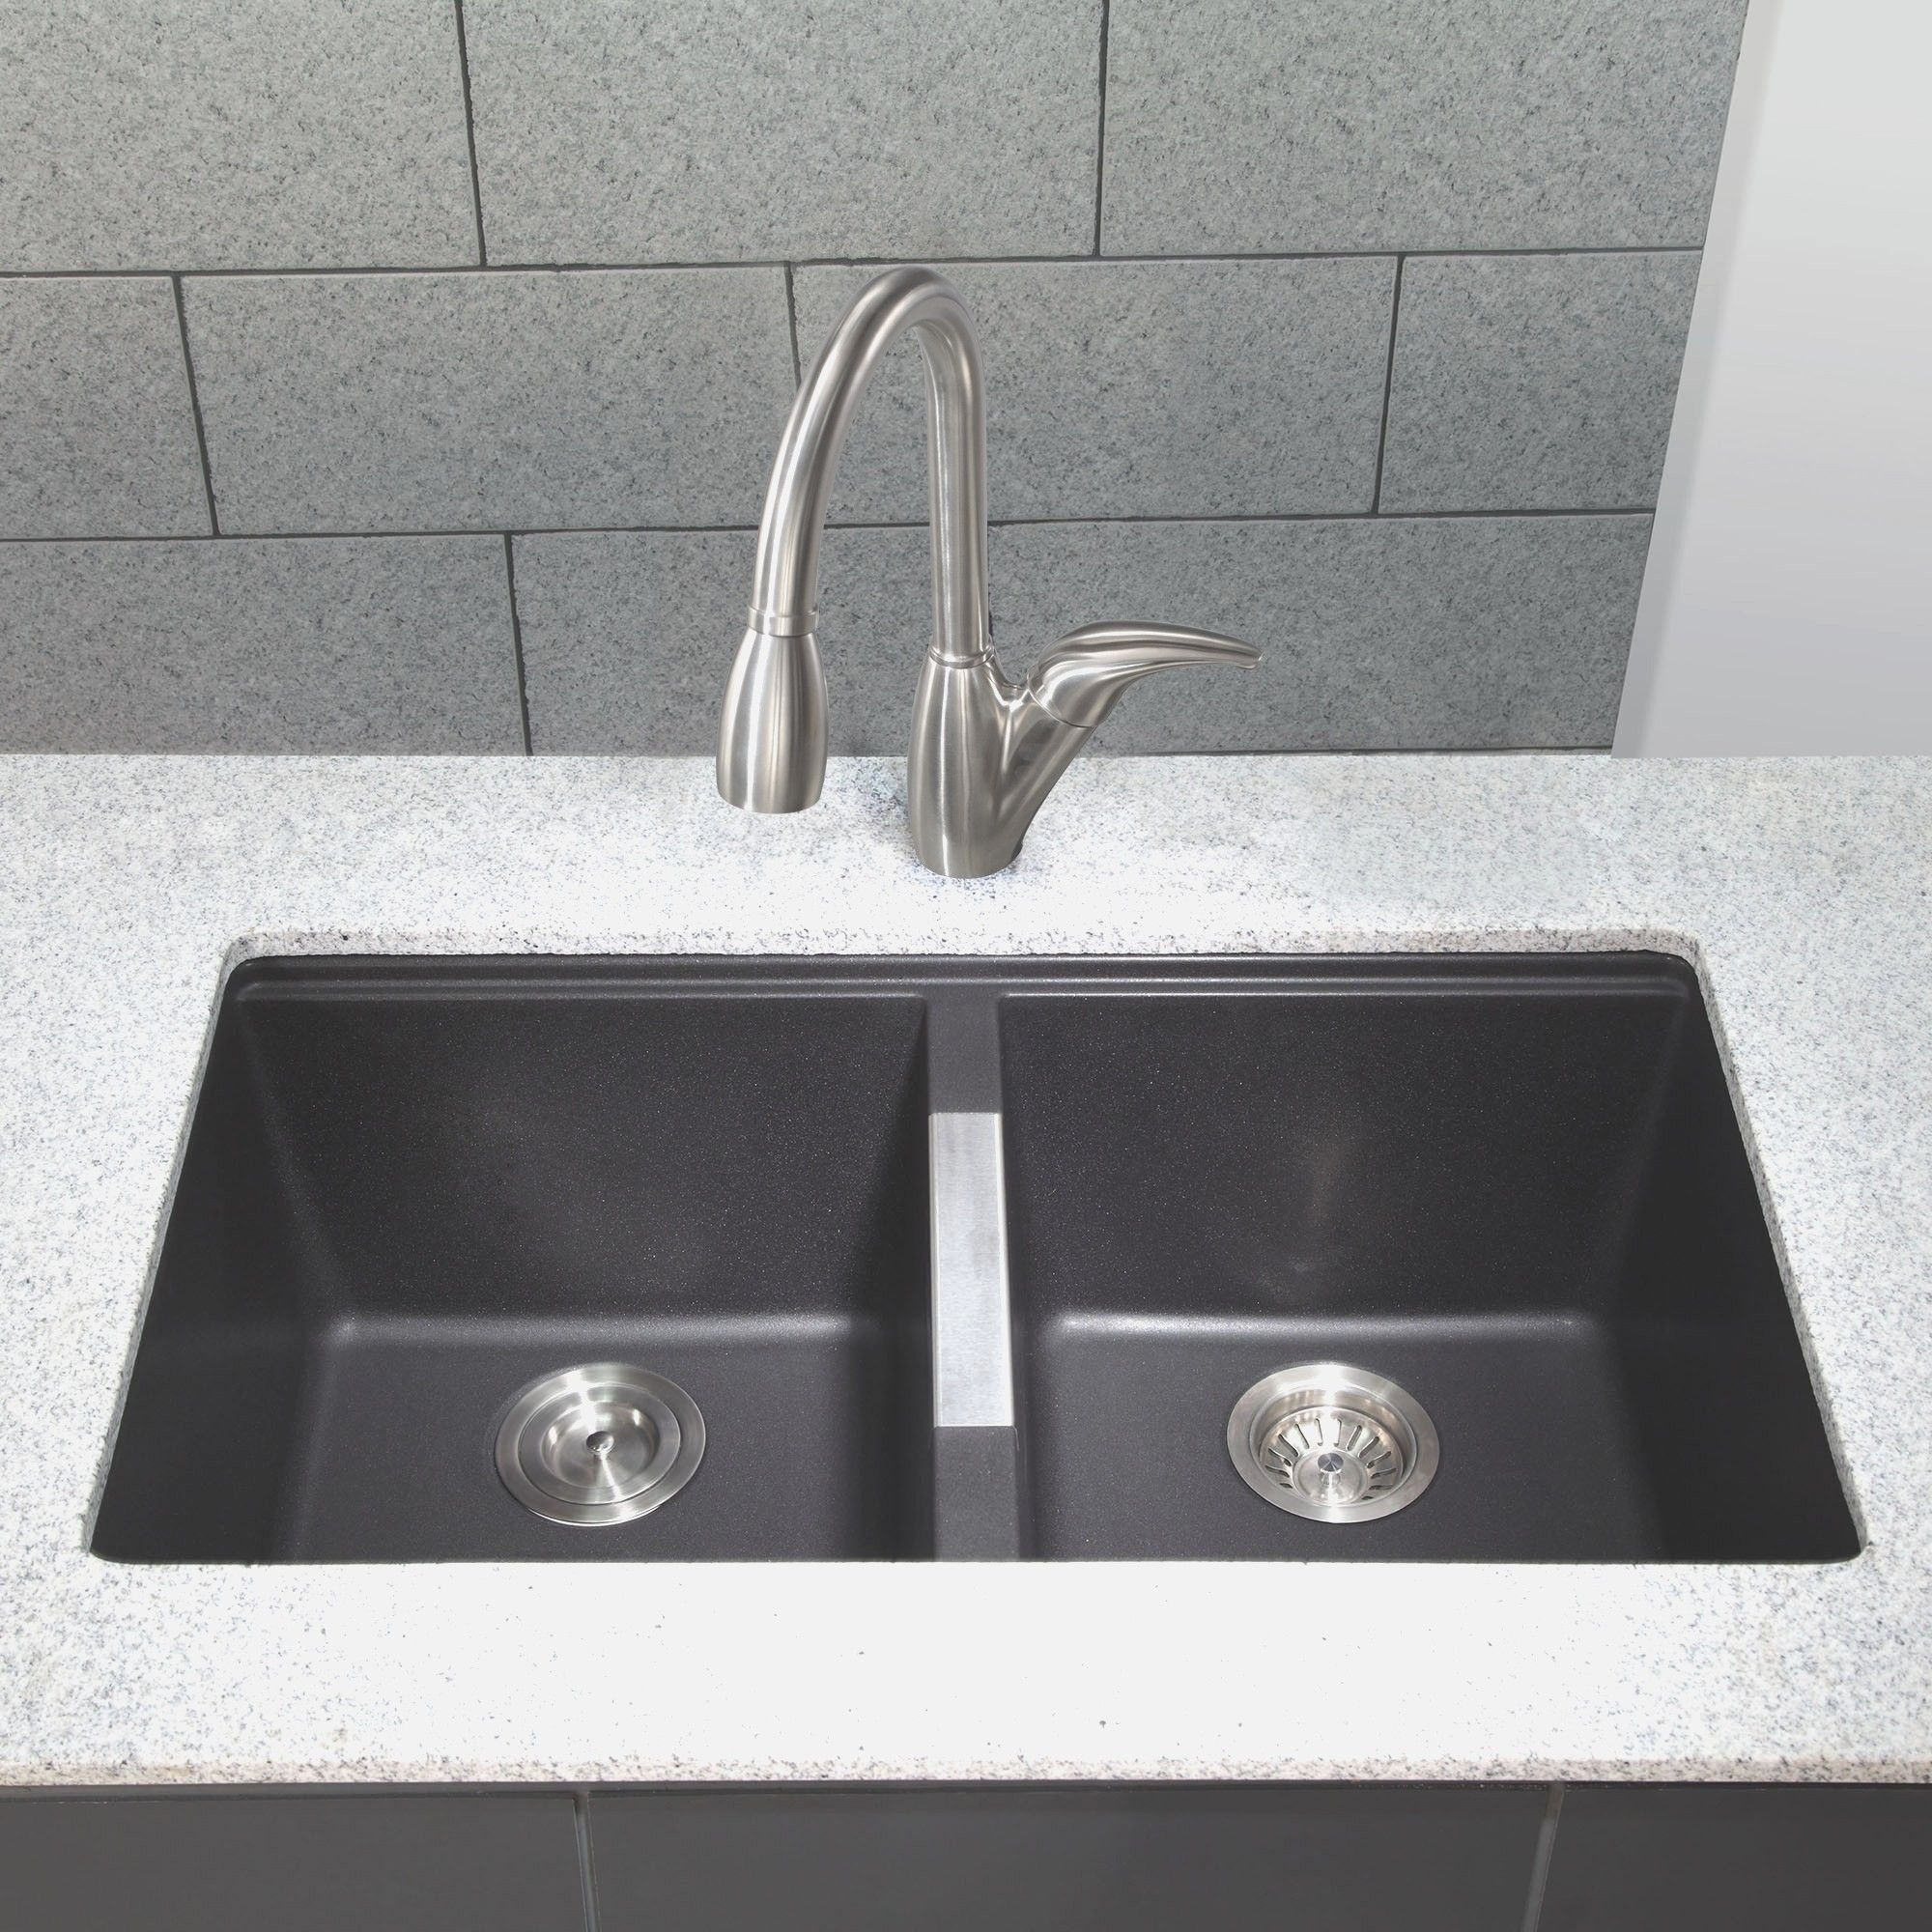 Home Depot Kitchen Sinks Undermount - home depot canada undermount ...